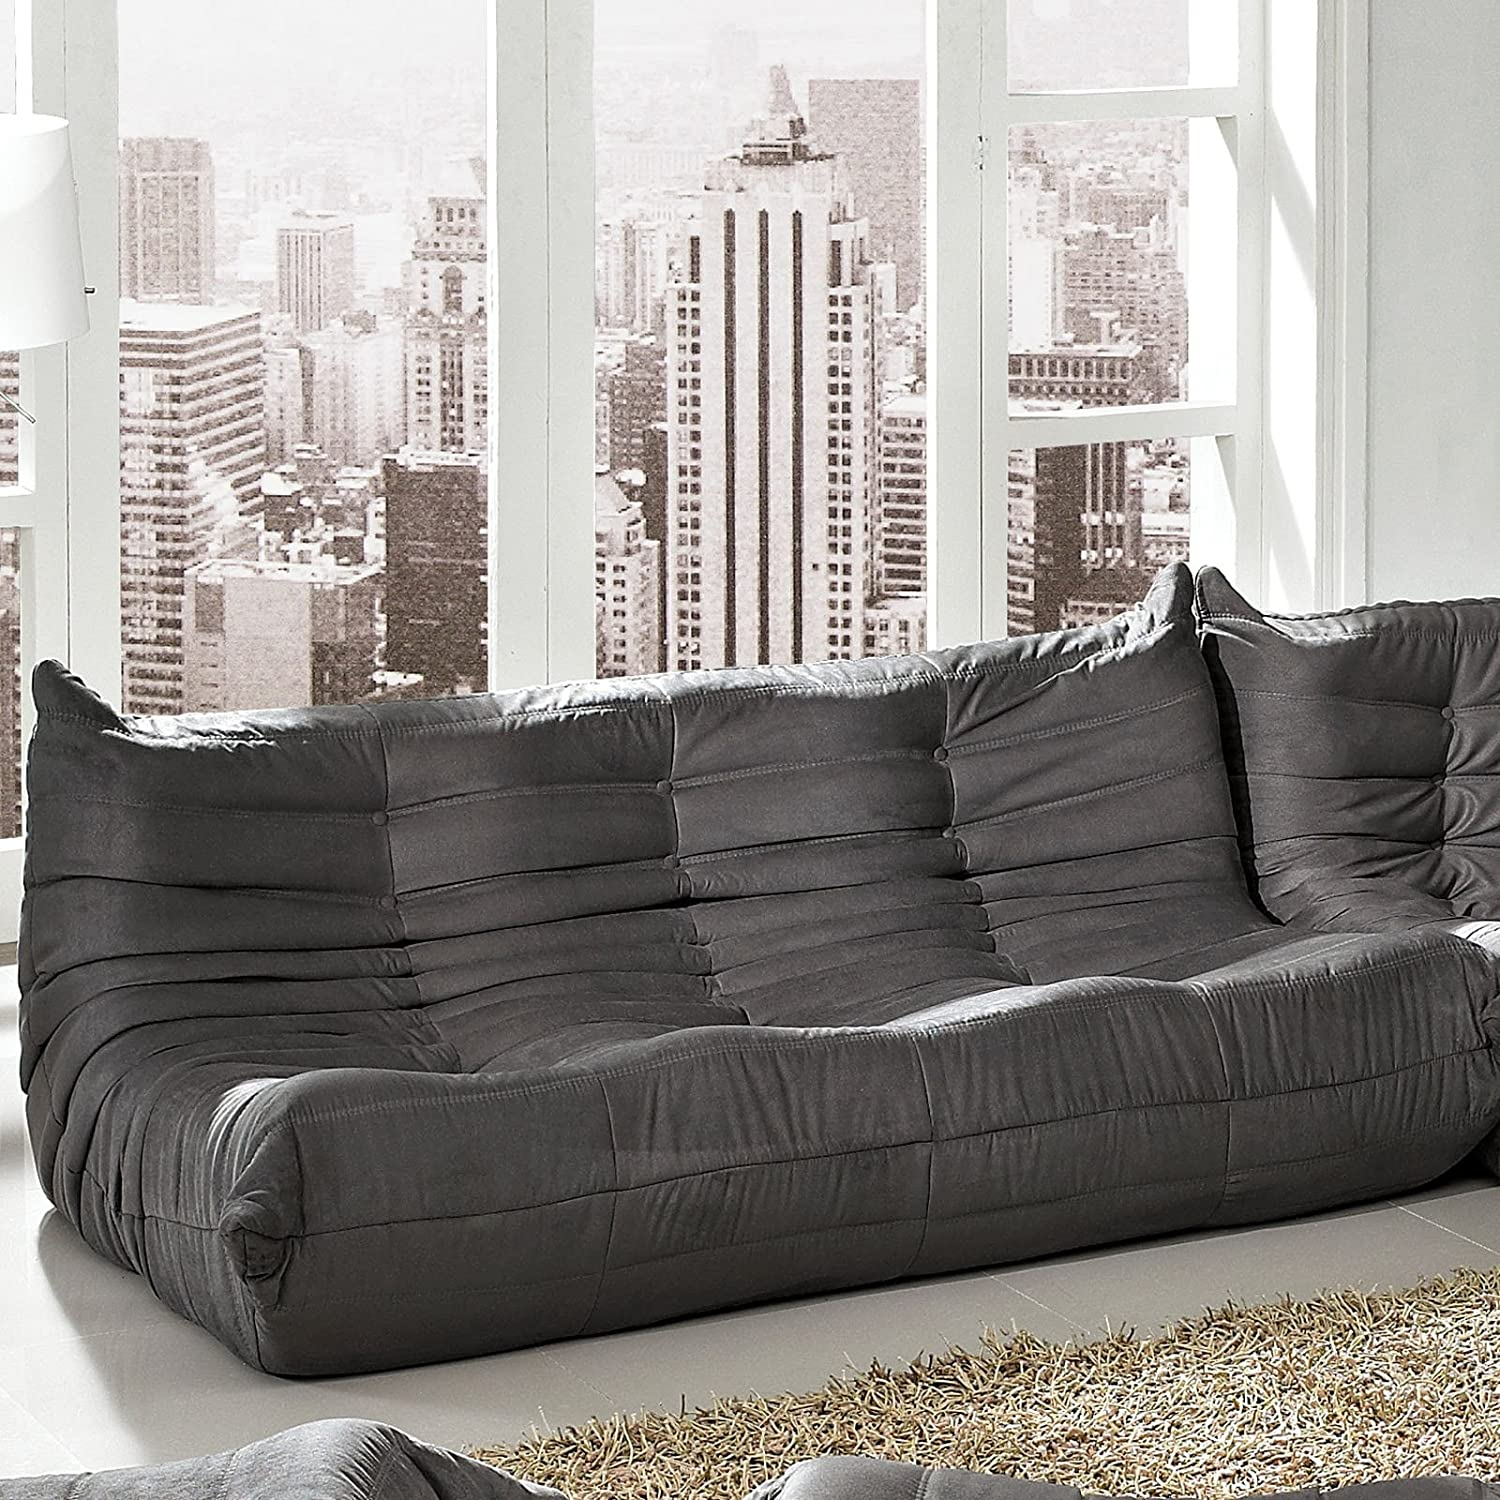 LexMod Waverunner Modular Sectional Sofa in Light Gray Amazon